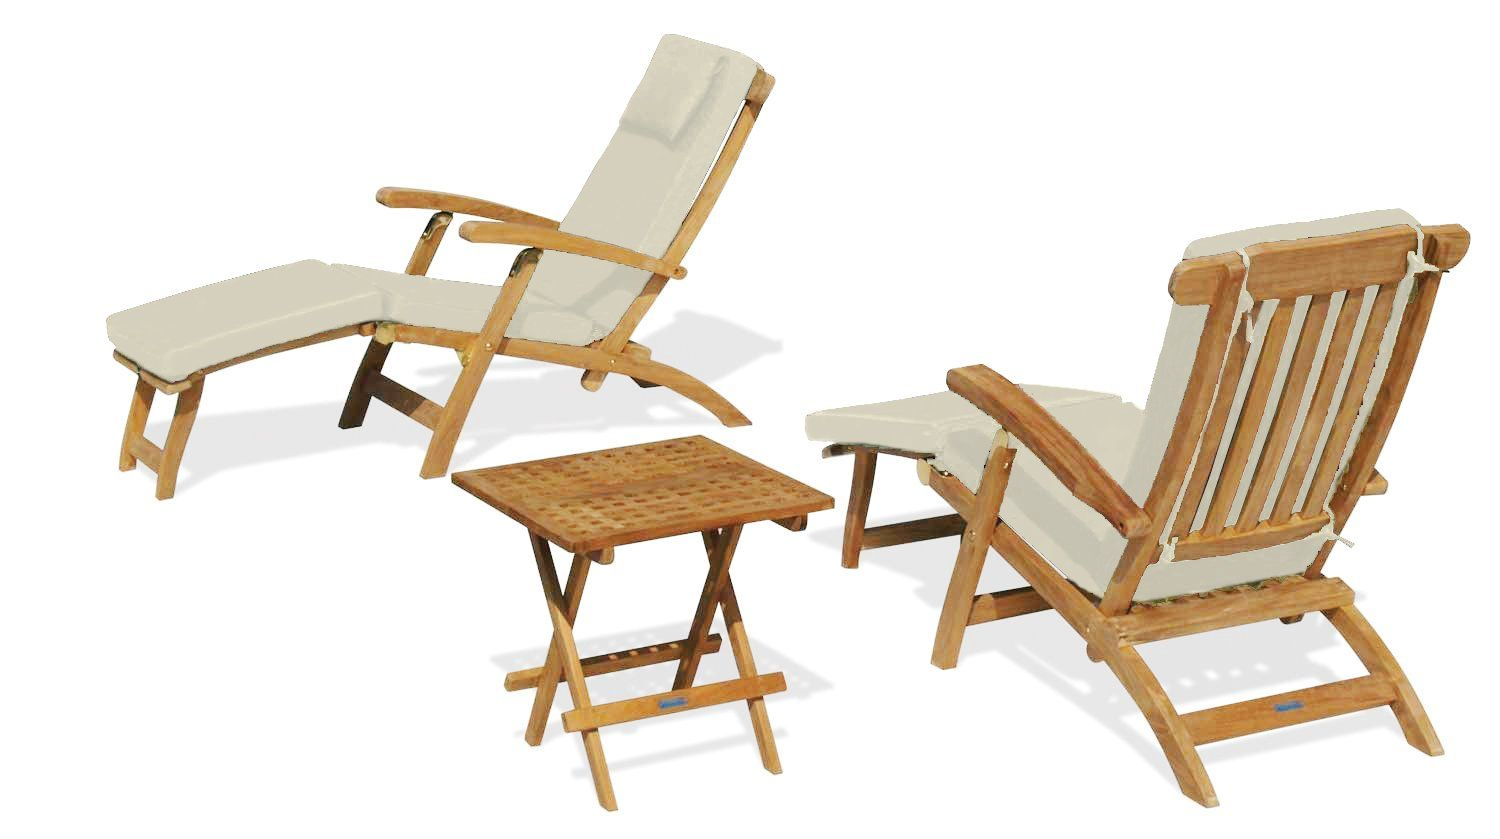 Two Serenity Outdoor Wooden Teak Steamer Chairs With Cushions And Picnic Garden Table Set Natural Jati Brand Quality V Garden Table Chair Outdoor Chairs